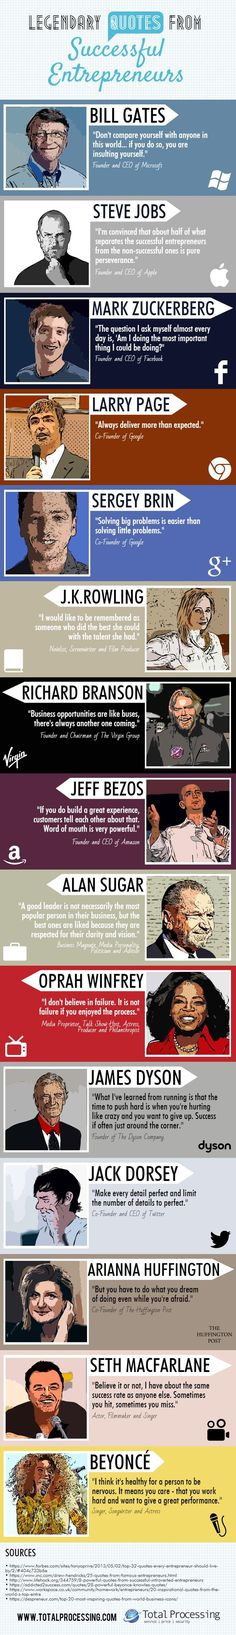 15 Motivational Quotes from Successful Entrepreneurs [Infographic]